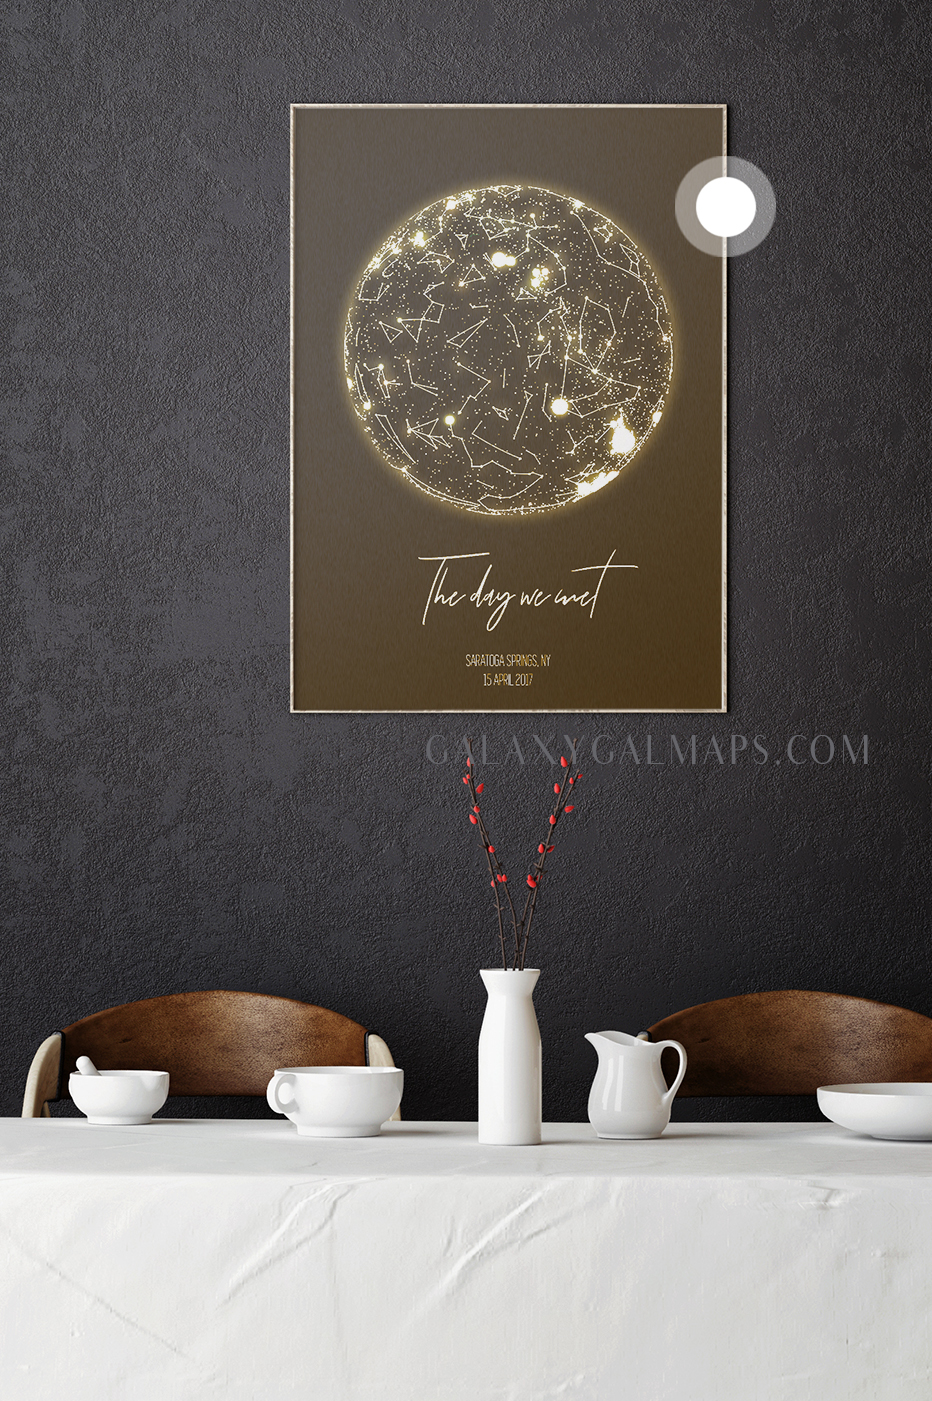 unique sky map for your date custom star map wall art wedding gift song lyrics unique wedding gift for couple wedding song lyric art song lyrics